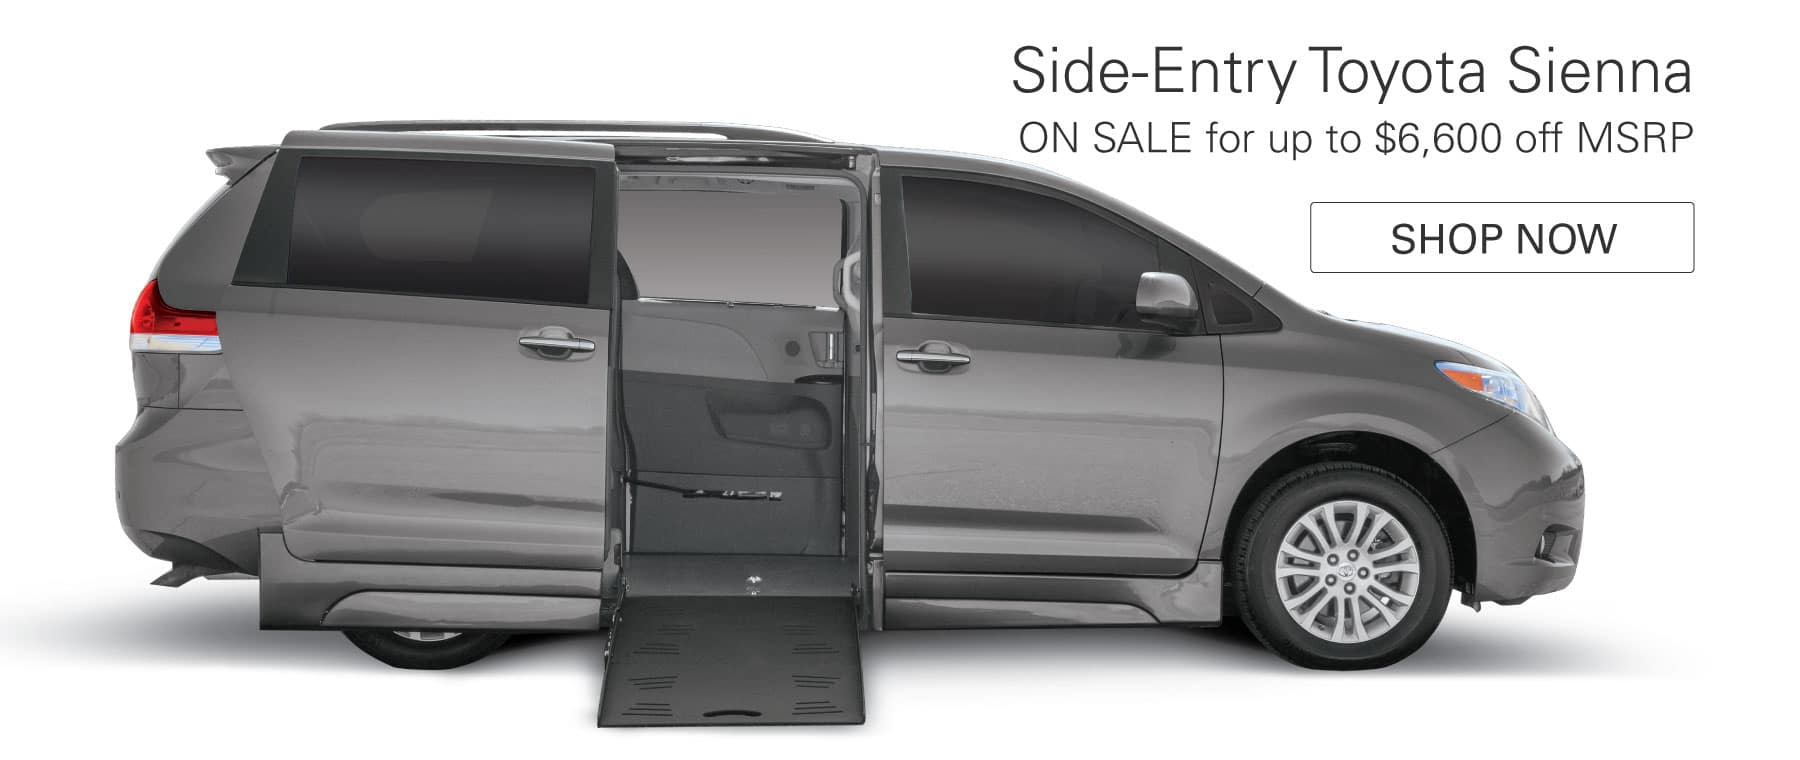 Side-Entry Toyota Sienna on Sale for up to $6,600 off MSRP